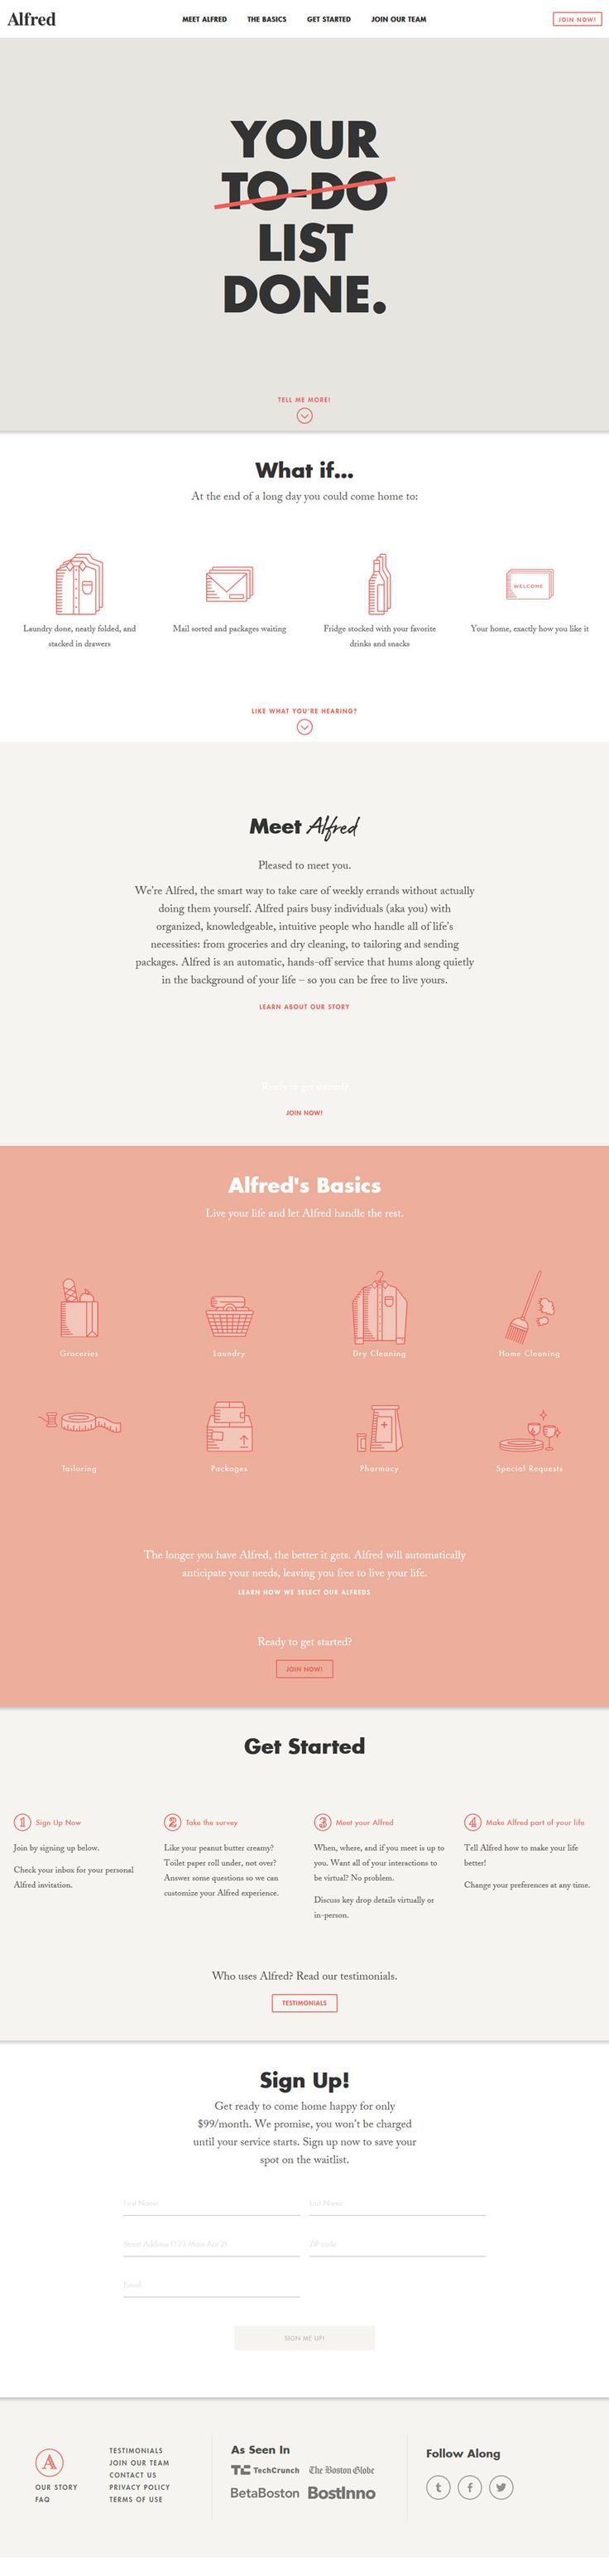 Alfred, minimal design #website. I love the color pallet and one page layout.